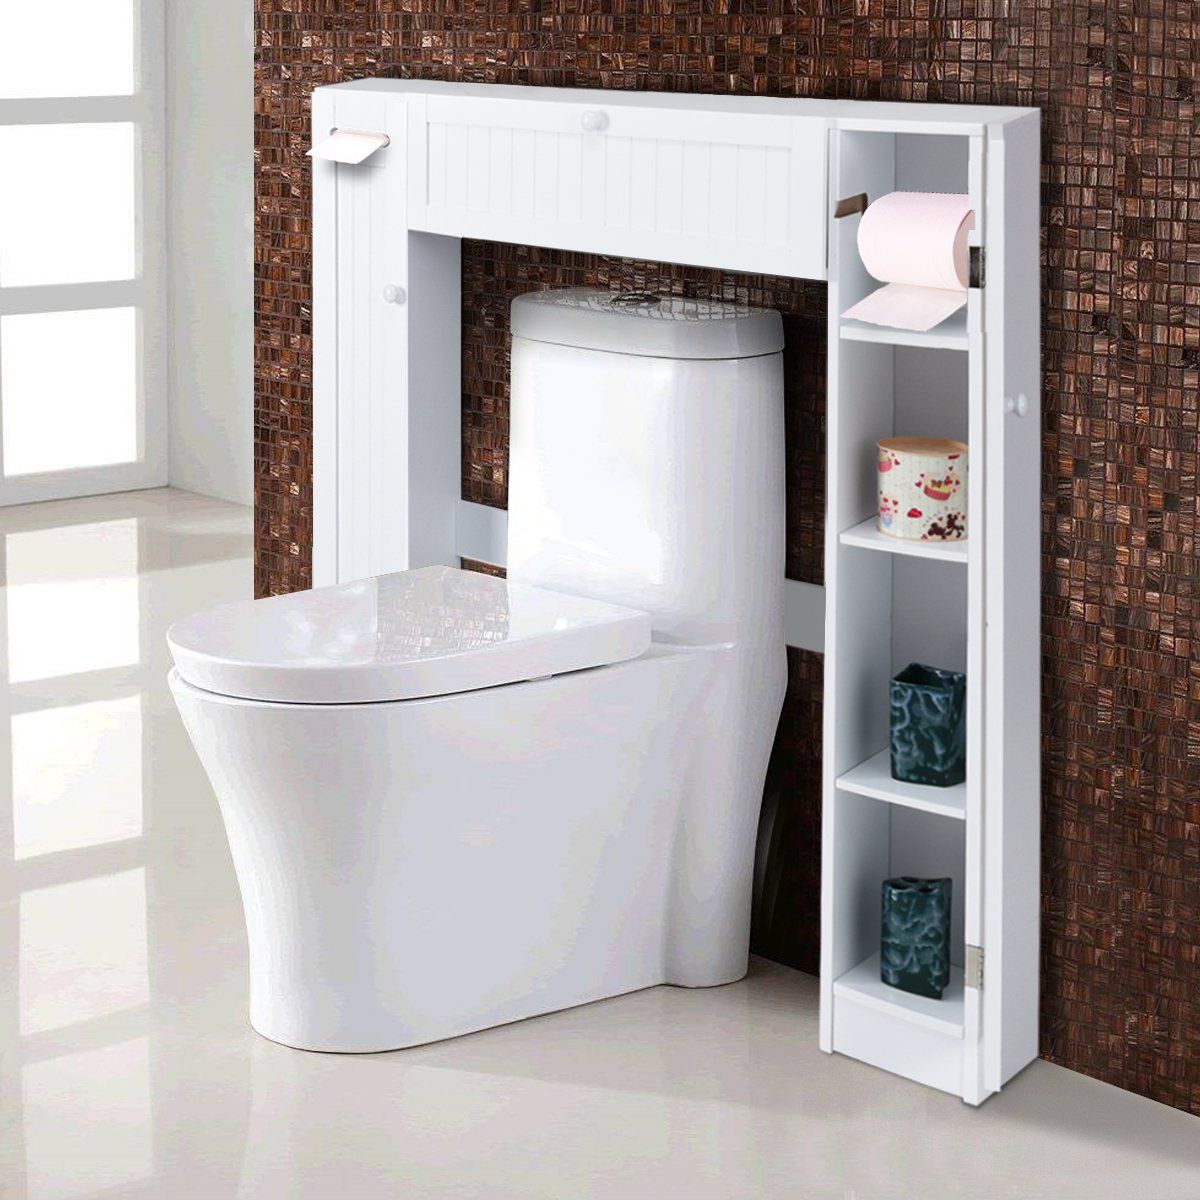 Giantex Over-The-Toilet Bathroom Storage Cabinet Wooden Drop Door Freestanding Spacesaver Improvements